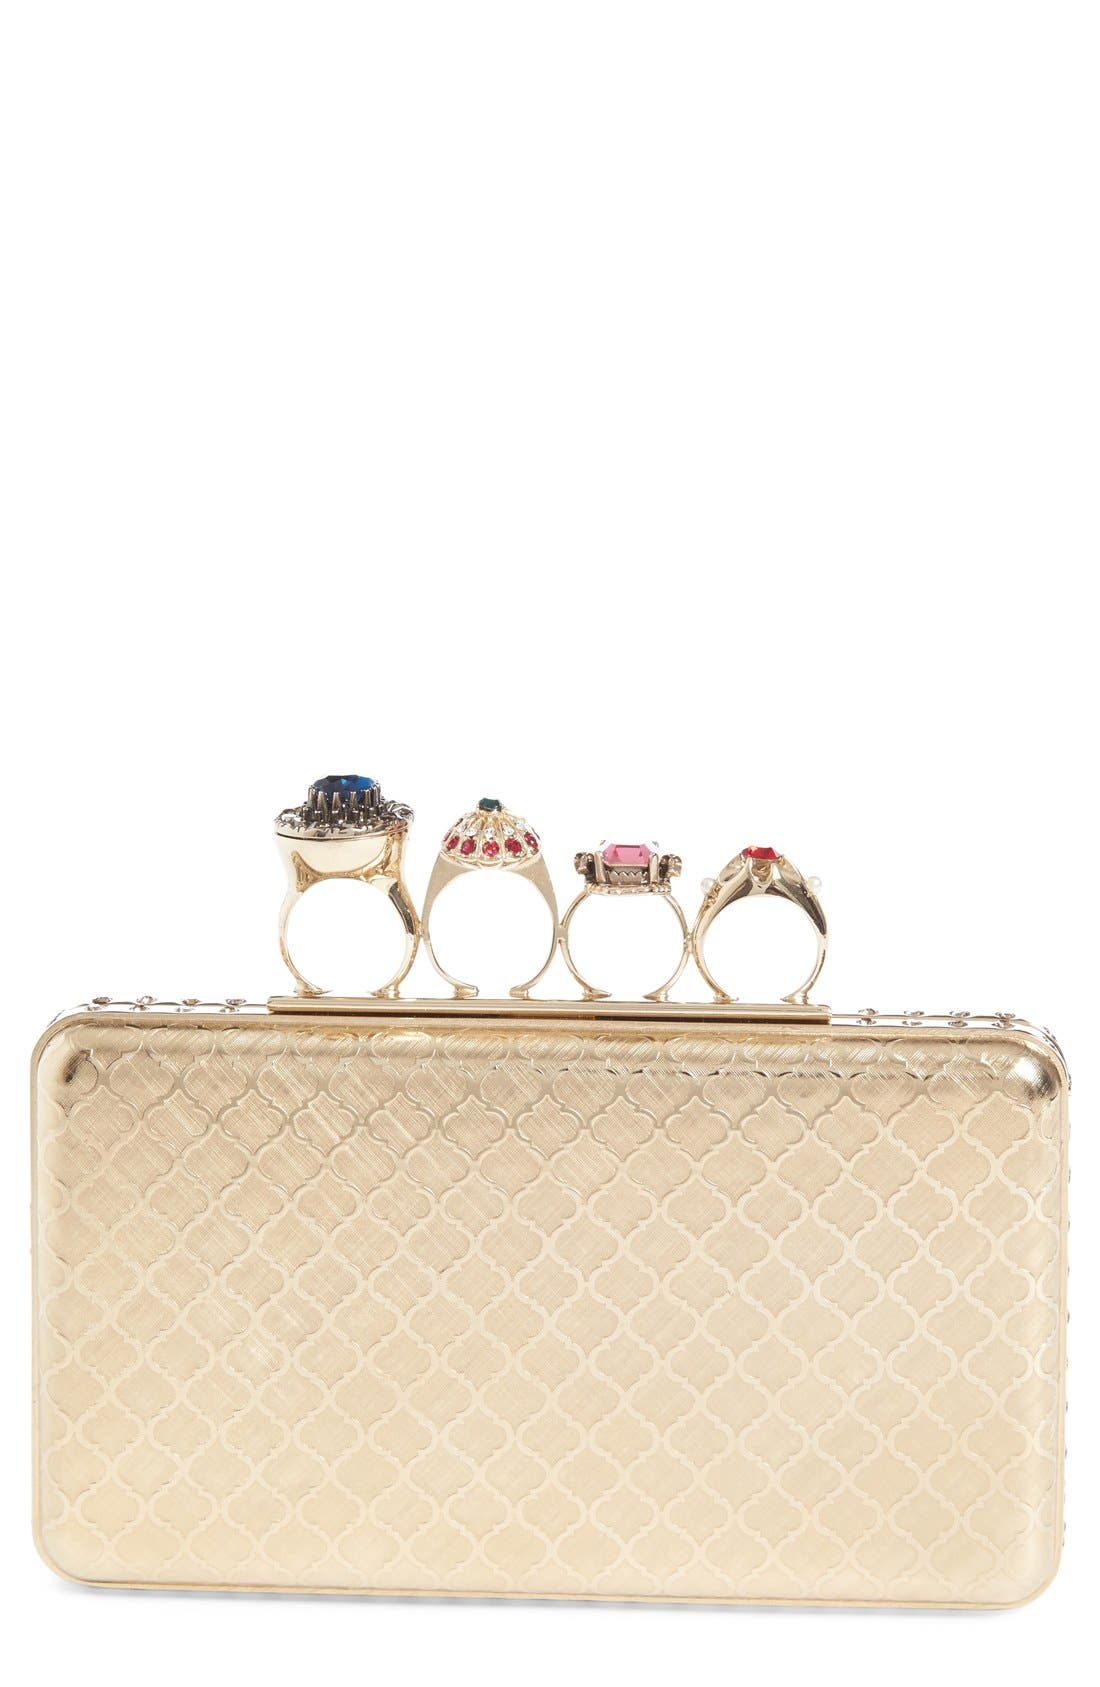 ALEXANDER MCQUEEN Embellished Knuckle Clasp Box Clutch